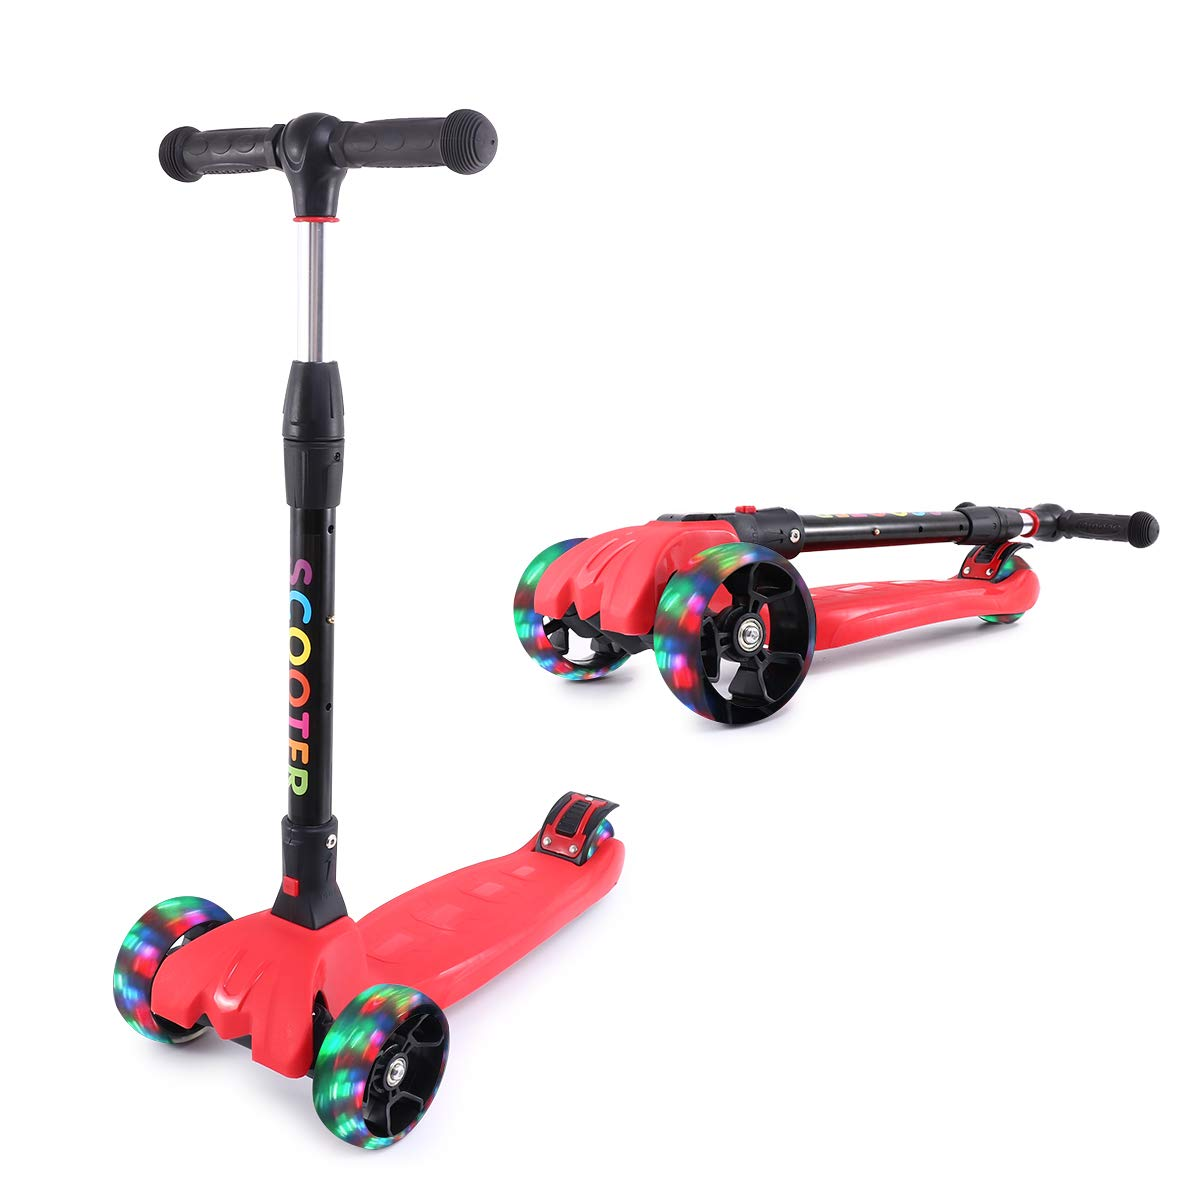 Kick Scooter for Kids with 4 Led Flashing Wheels for Boys or Girls Adjustable Height Extra Wide Deck Kick Scooter Best Gifts